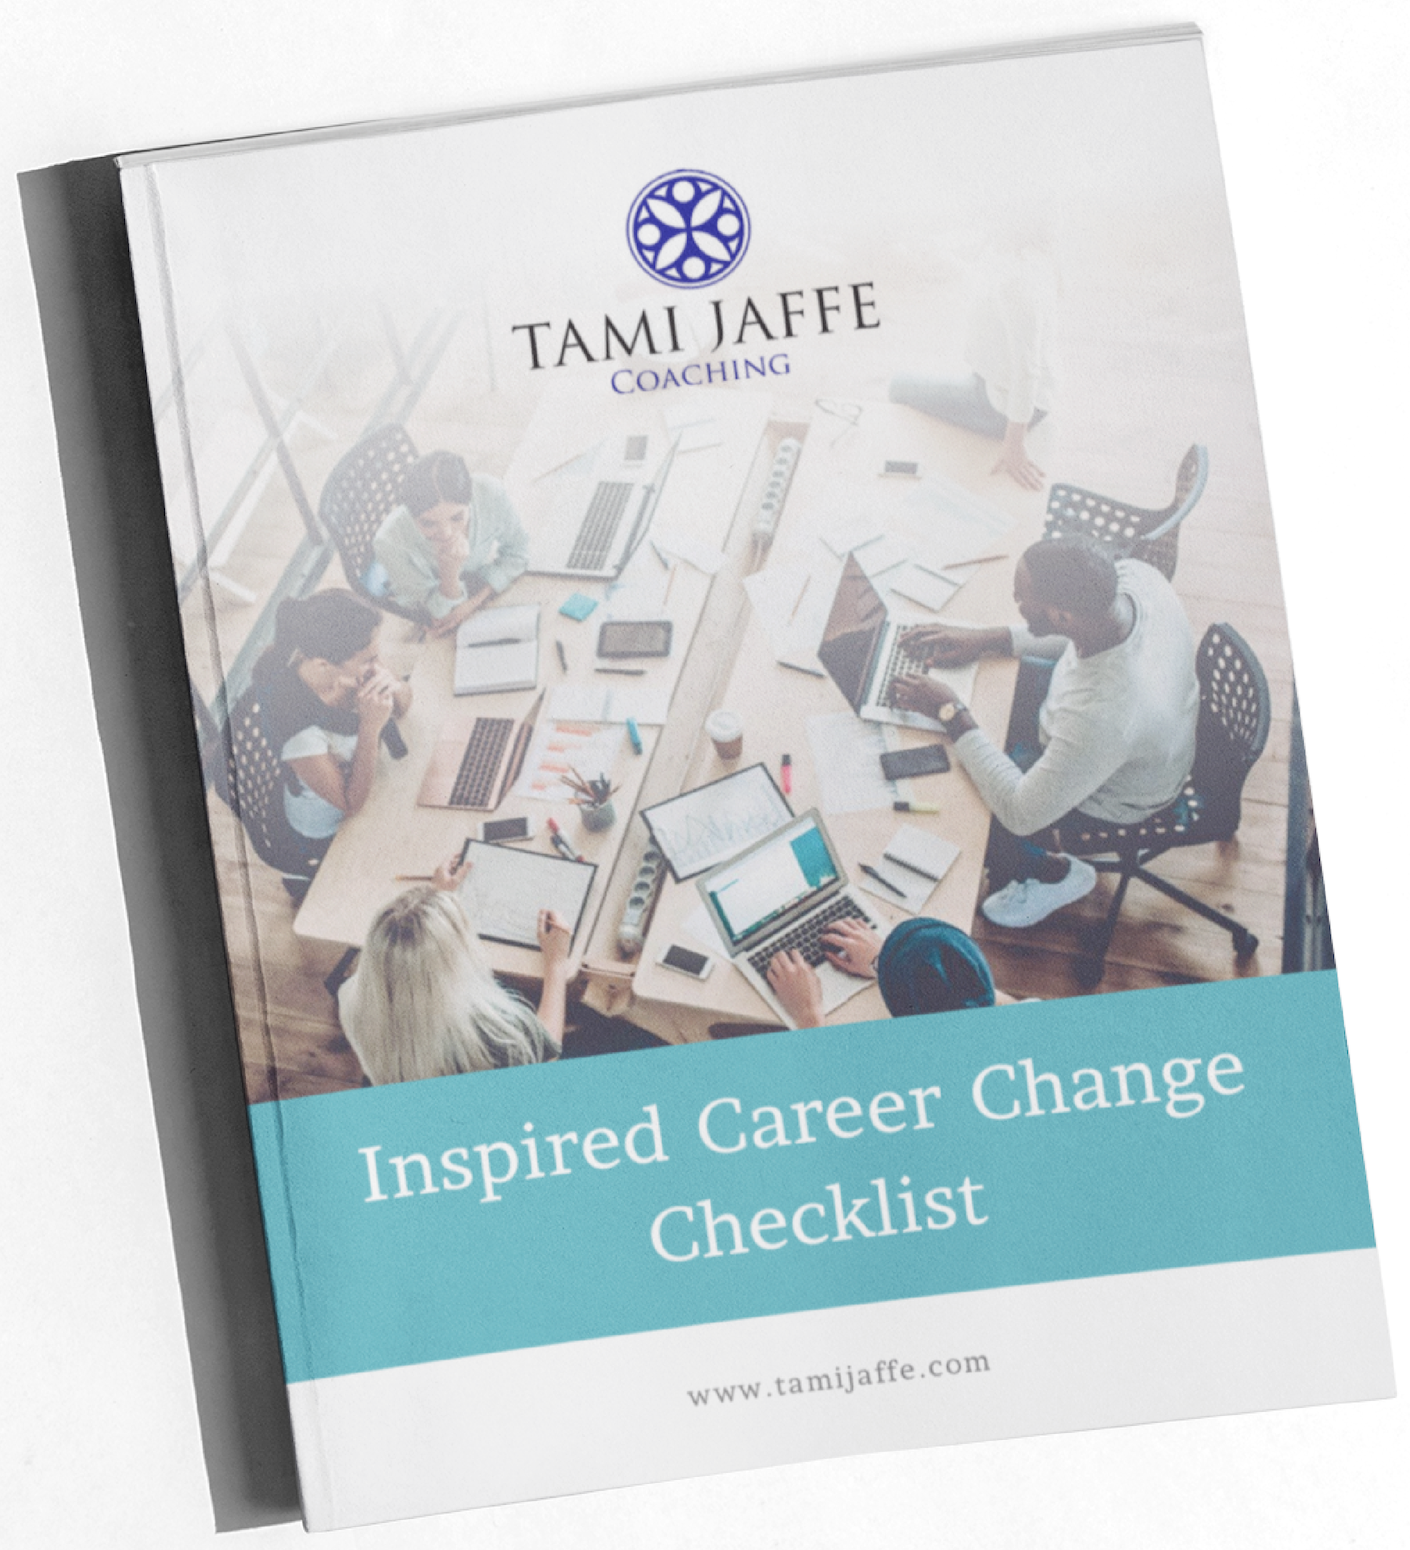 Inspired Career Change Checklist - Thinking about making a career change?Download this free checklist to get the first steps you need to take when you are considering a career change.